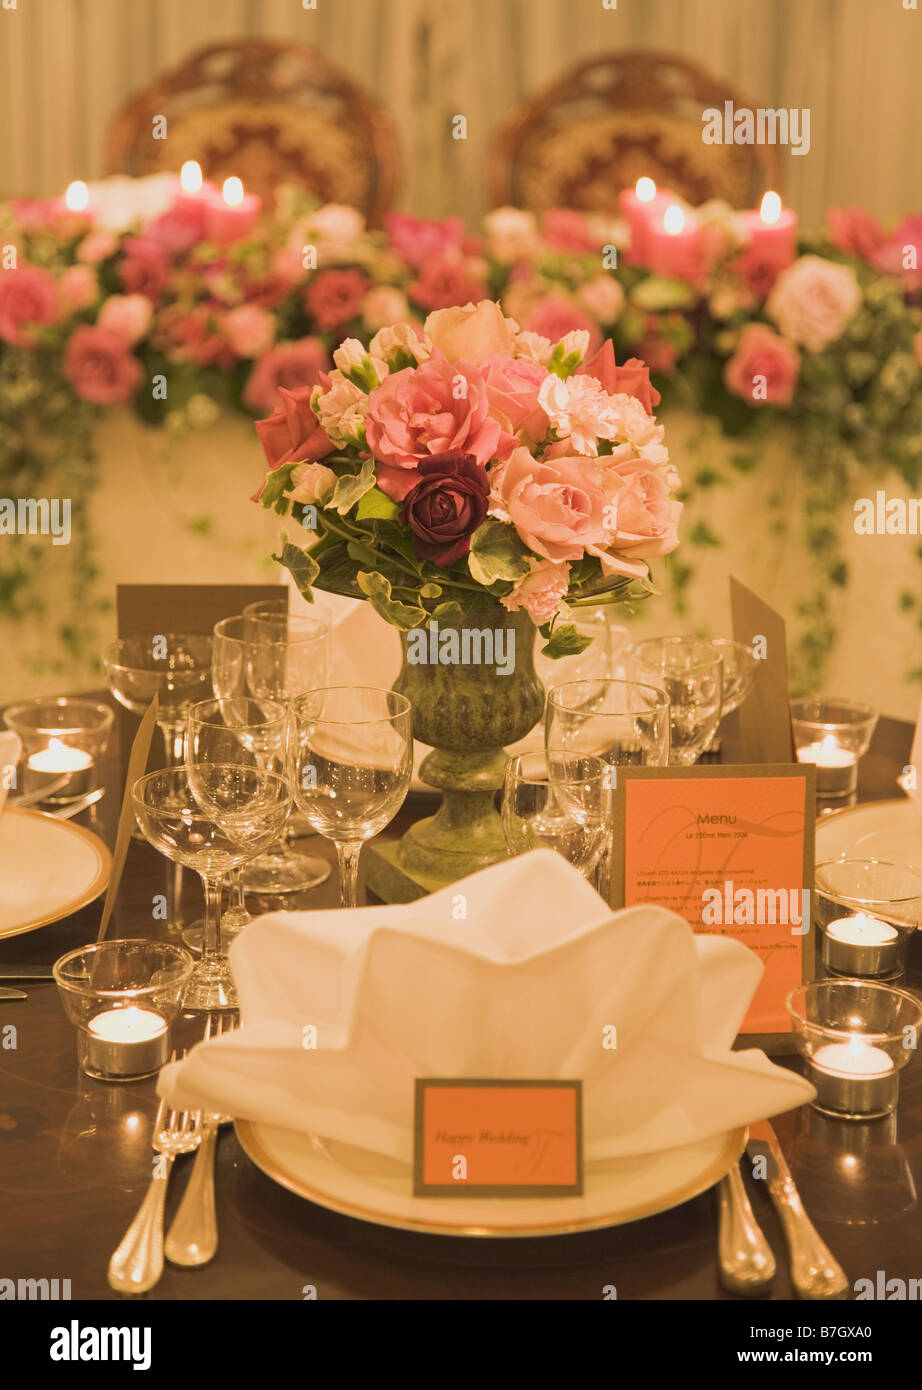 Setting for the Wedding Table - Stock Image